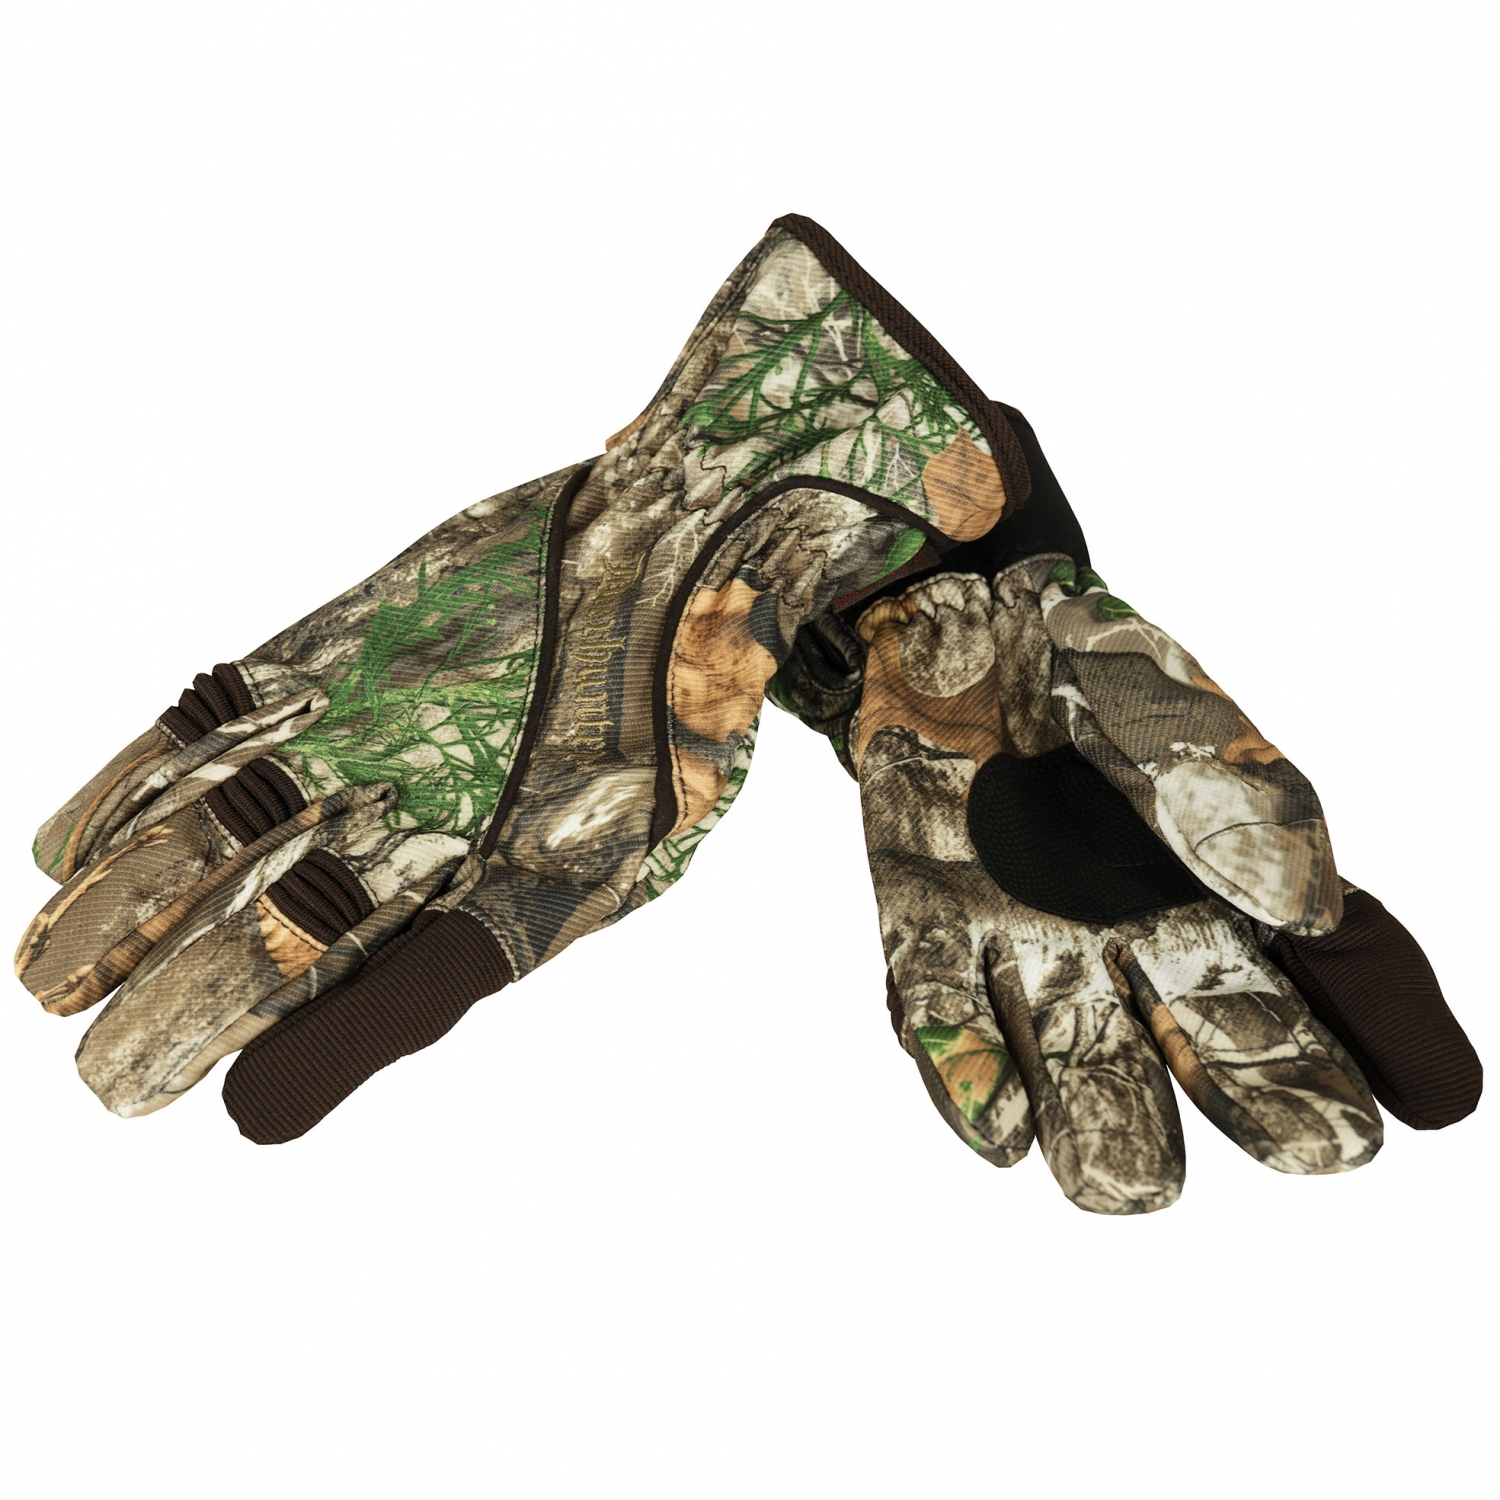 Deerhunter Muflon Light Gloves in 46 DH Edge - The Hunting Edge Country  Sports - Hunting   Shooting Store UK 7fde5f176de